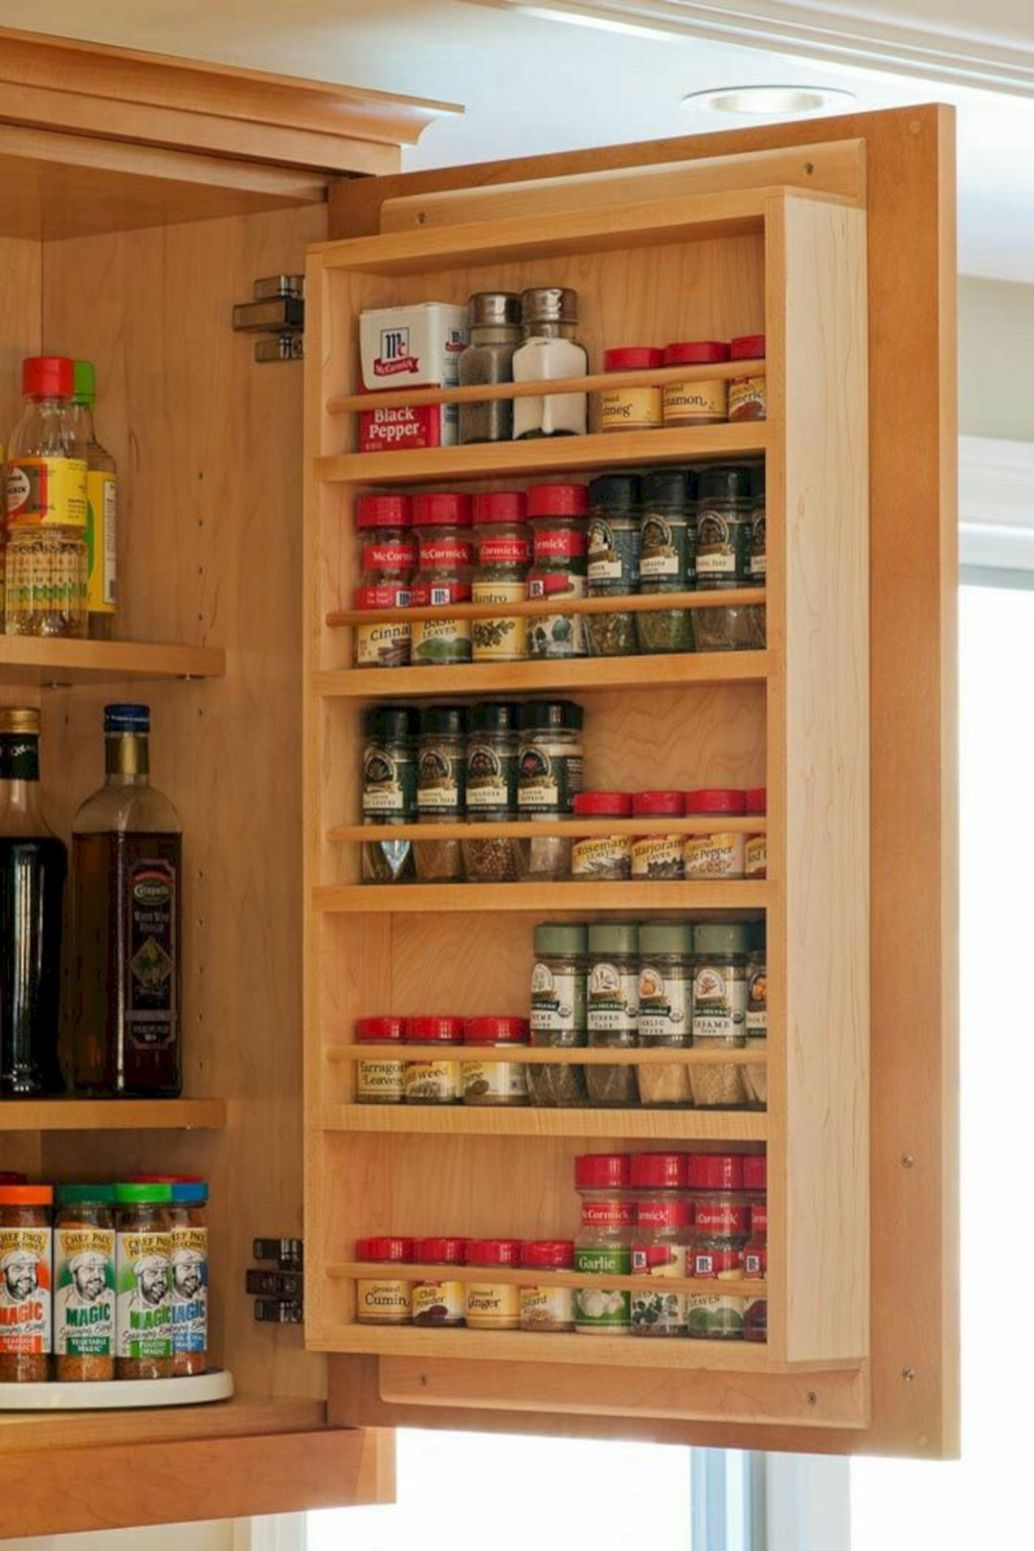 50 Best Small Kitchen Storage Ideas For Awesome Kitchen Organization 04 Kitchen Design Small Small Kitchen Storage Cheap Kitchen Remodel